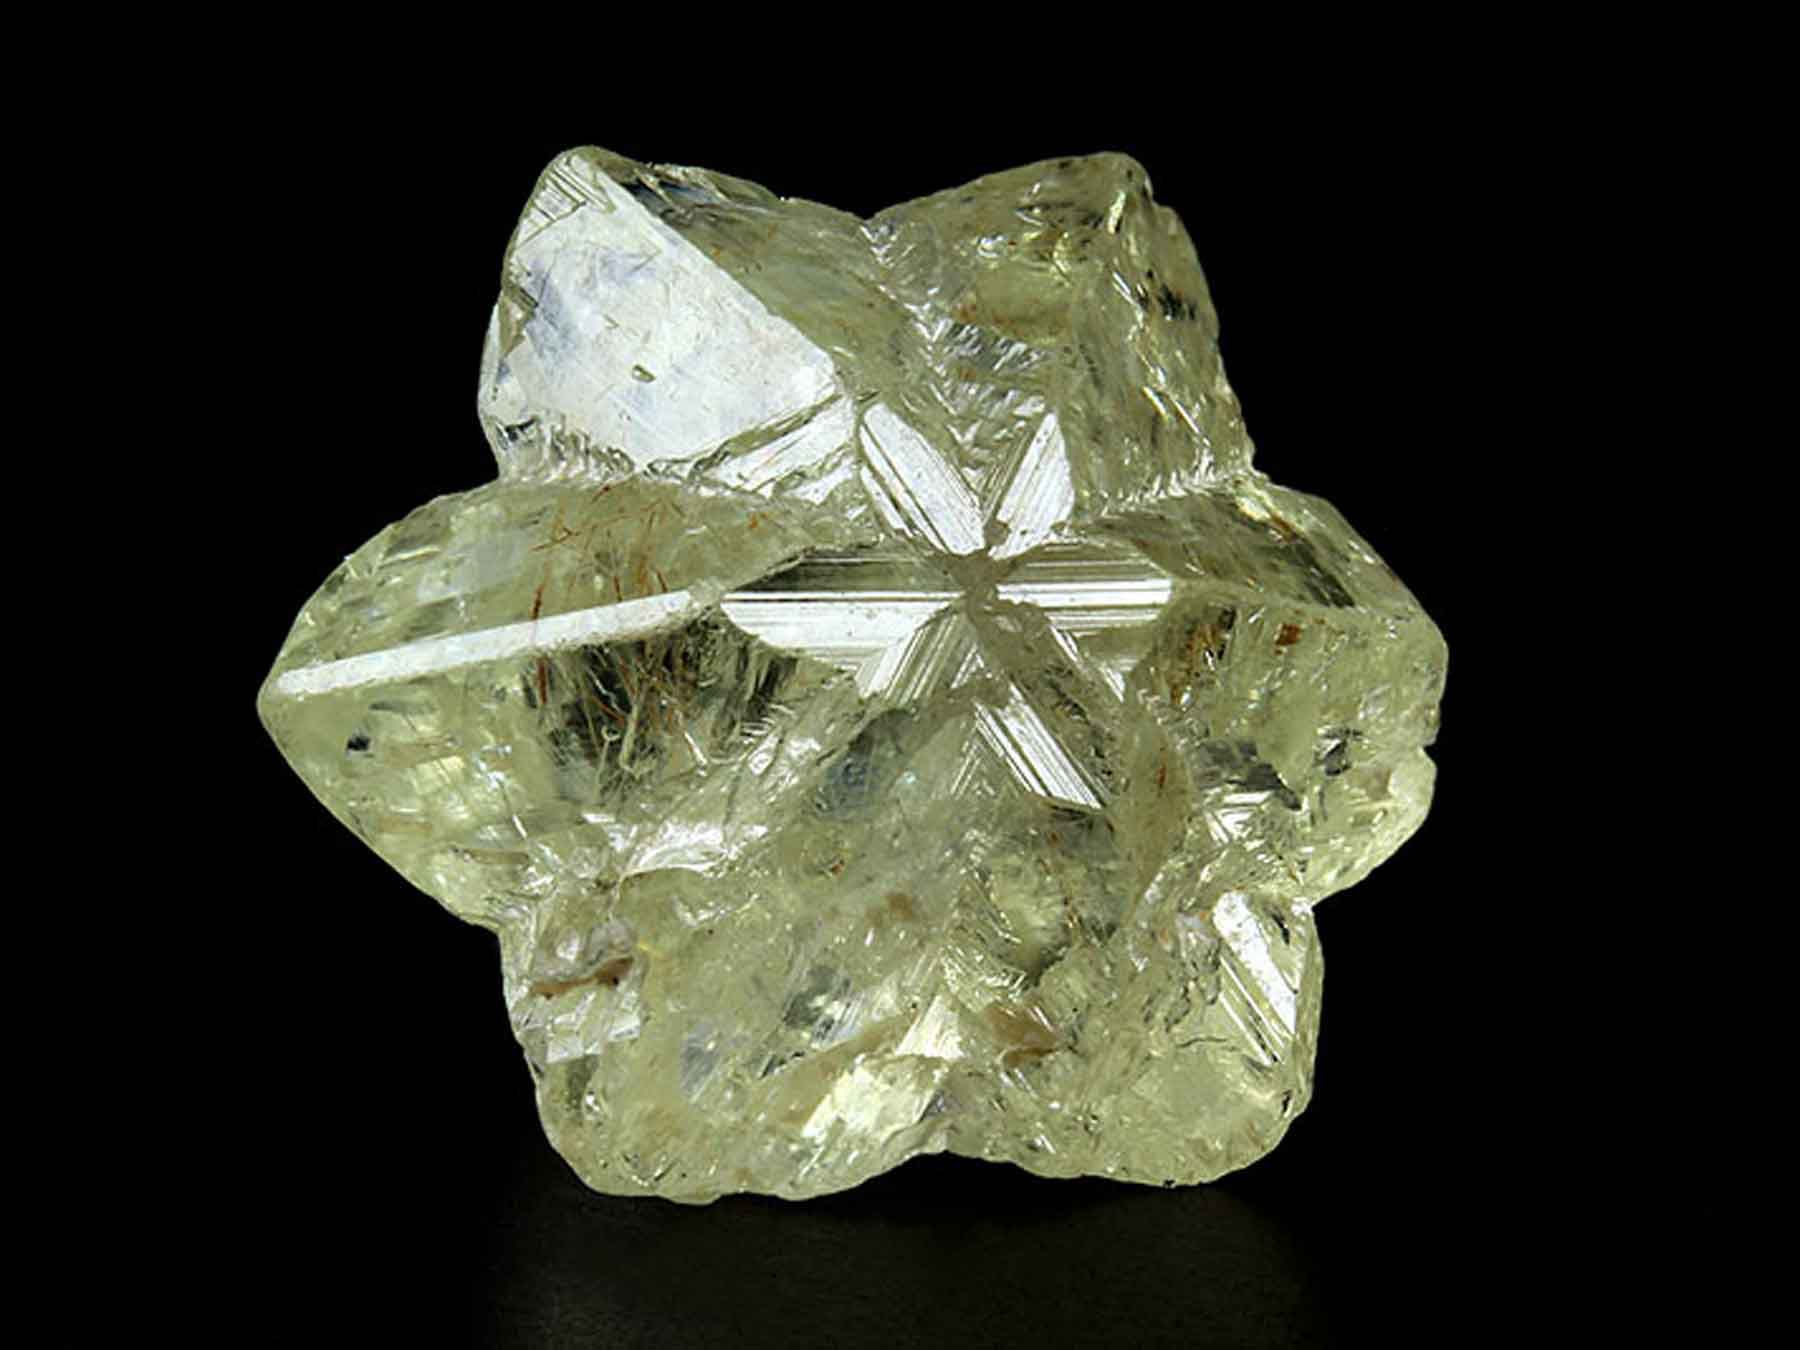 What does chrysoberyl mean